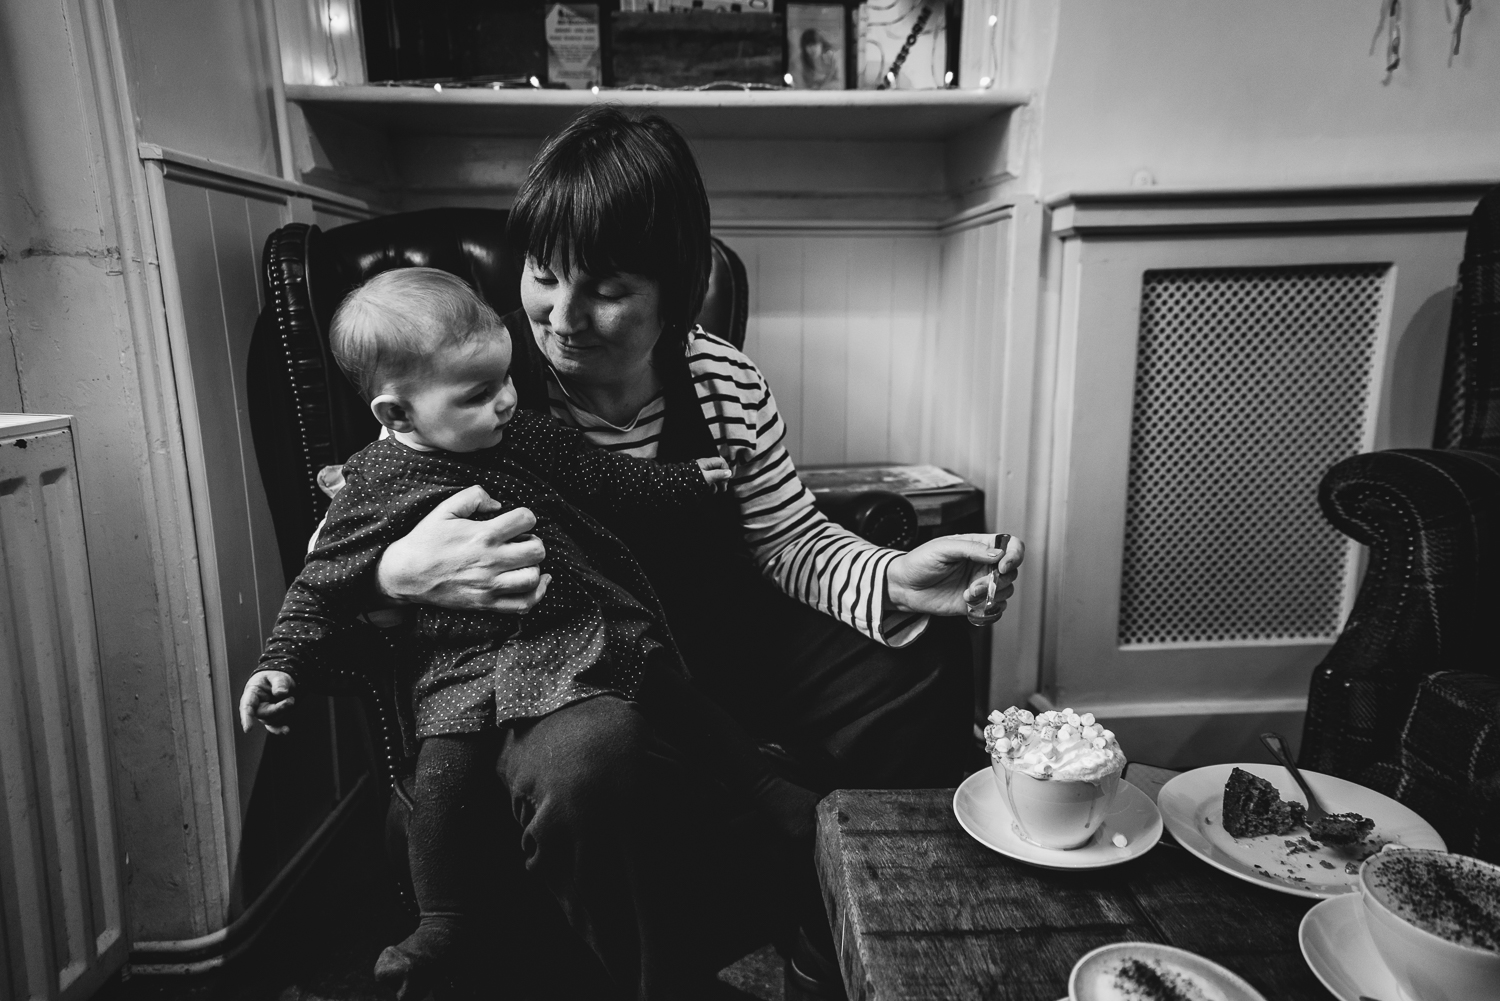 A black and white photograph of a mother and her child at a cafe